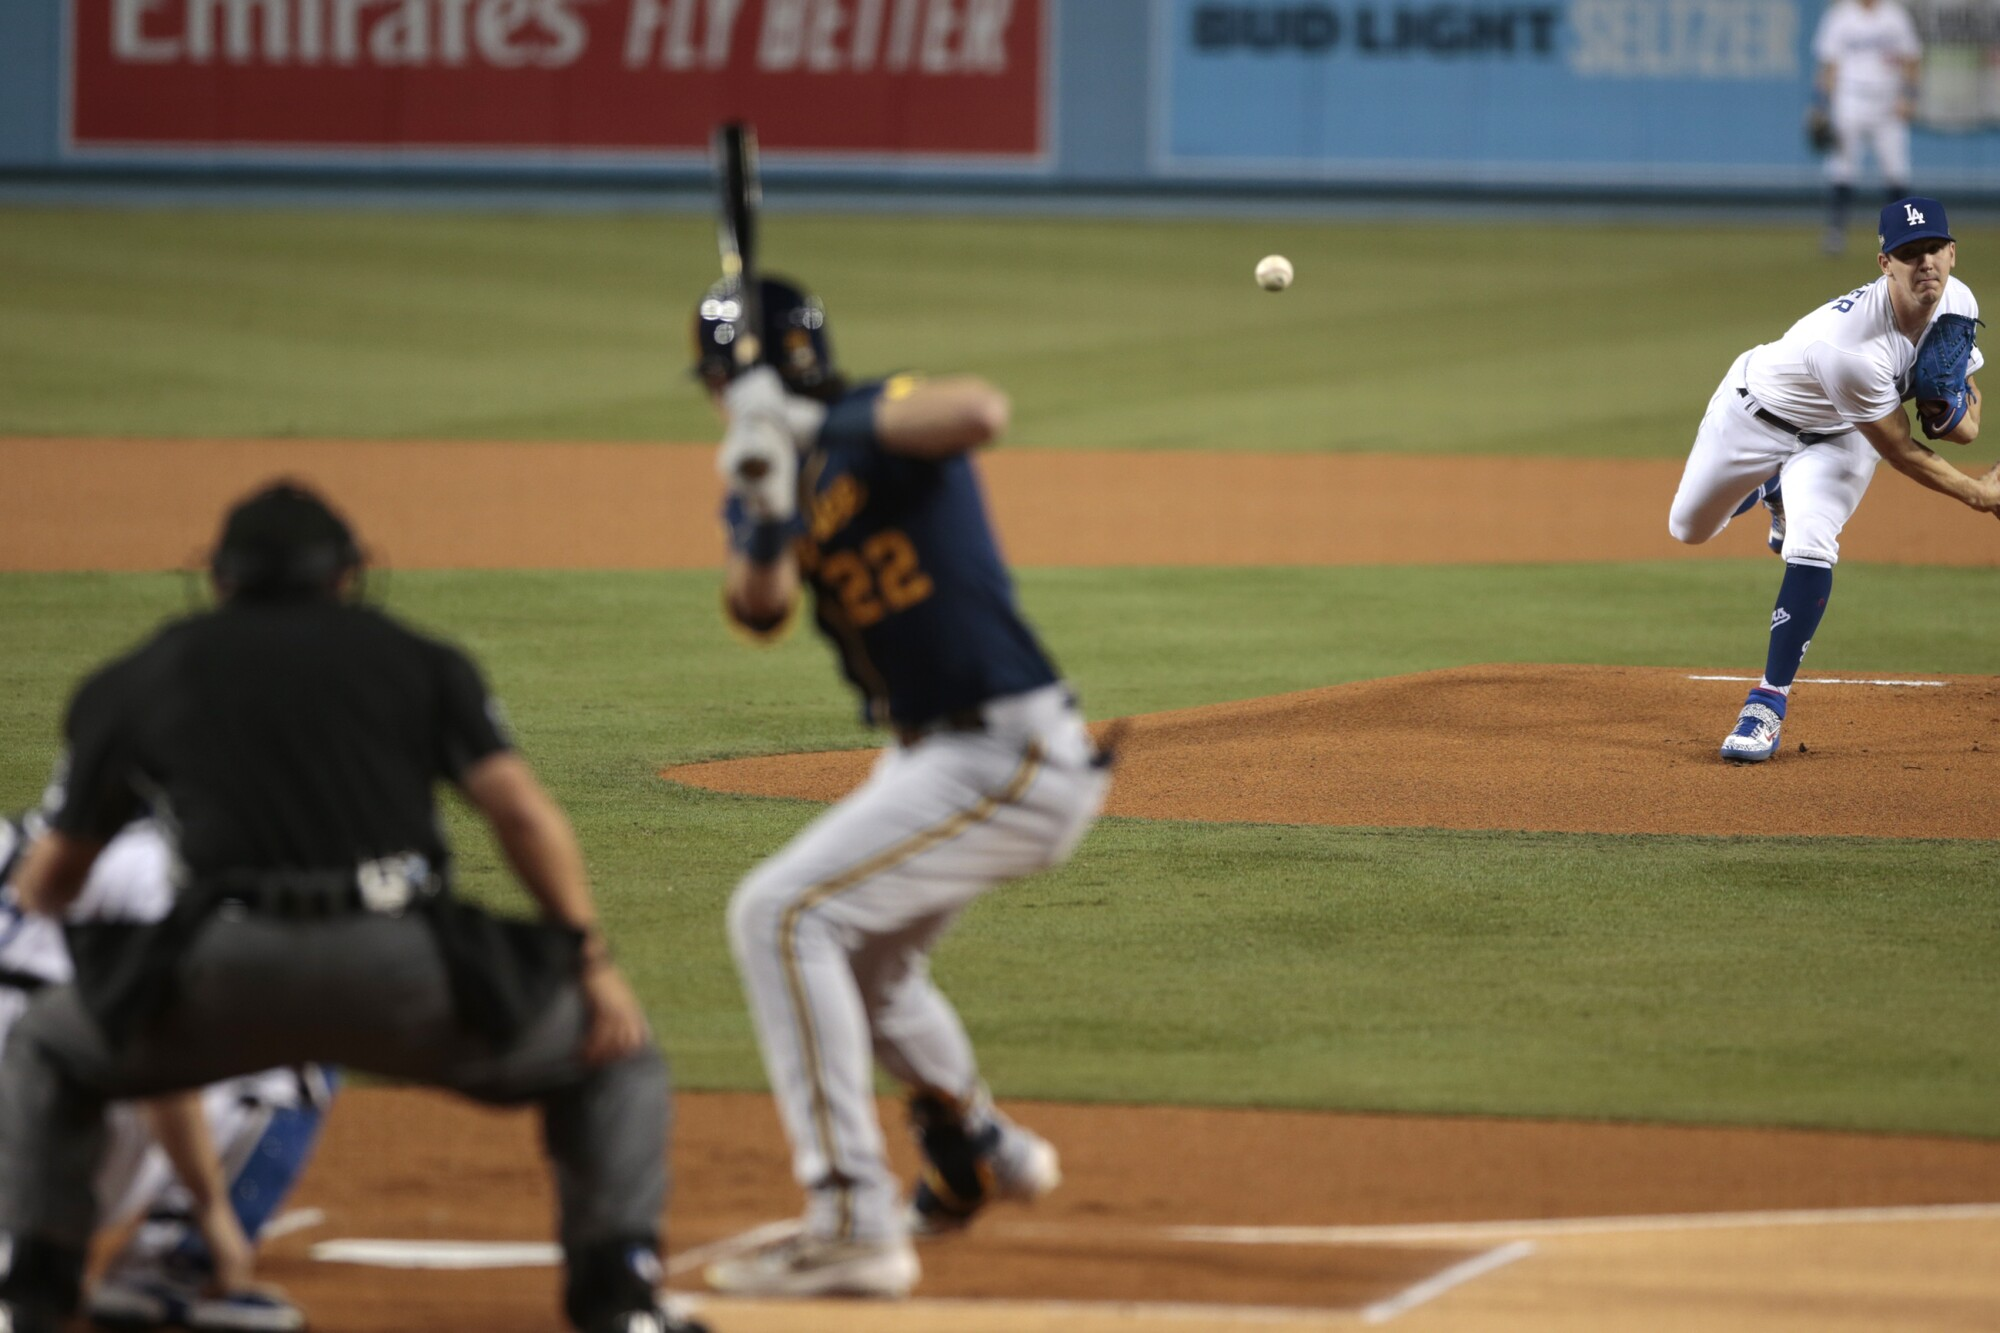 Dodgers pitcher Walker Buehler delivers to Milwaukee Brewers right fielder Christian Yelich.